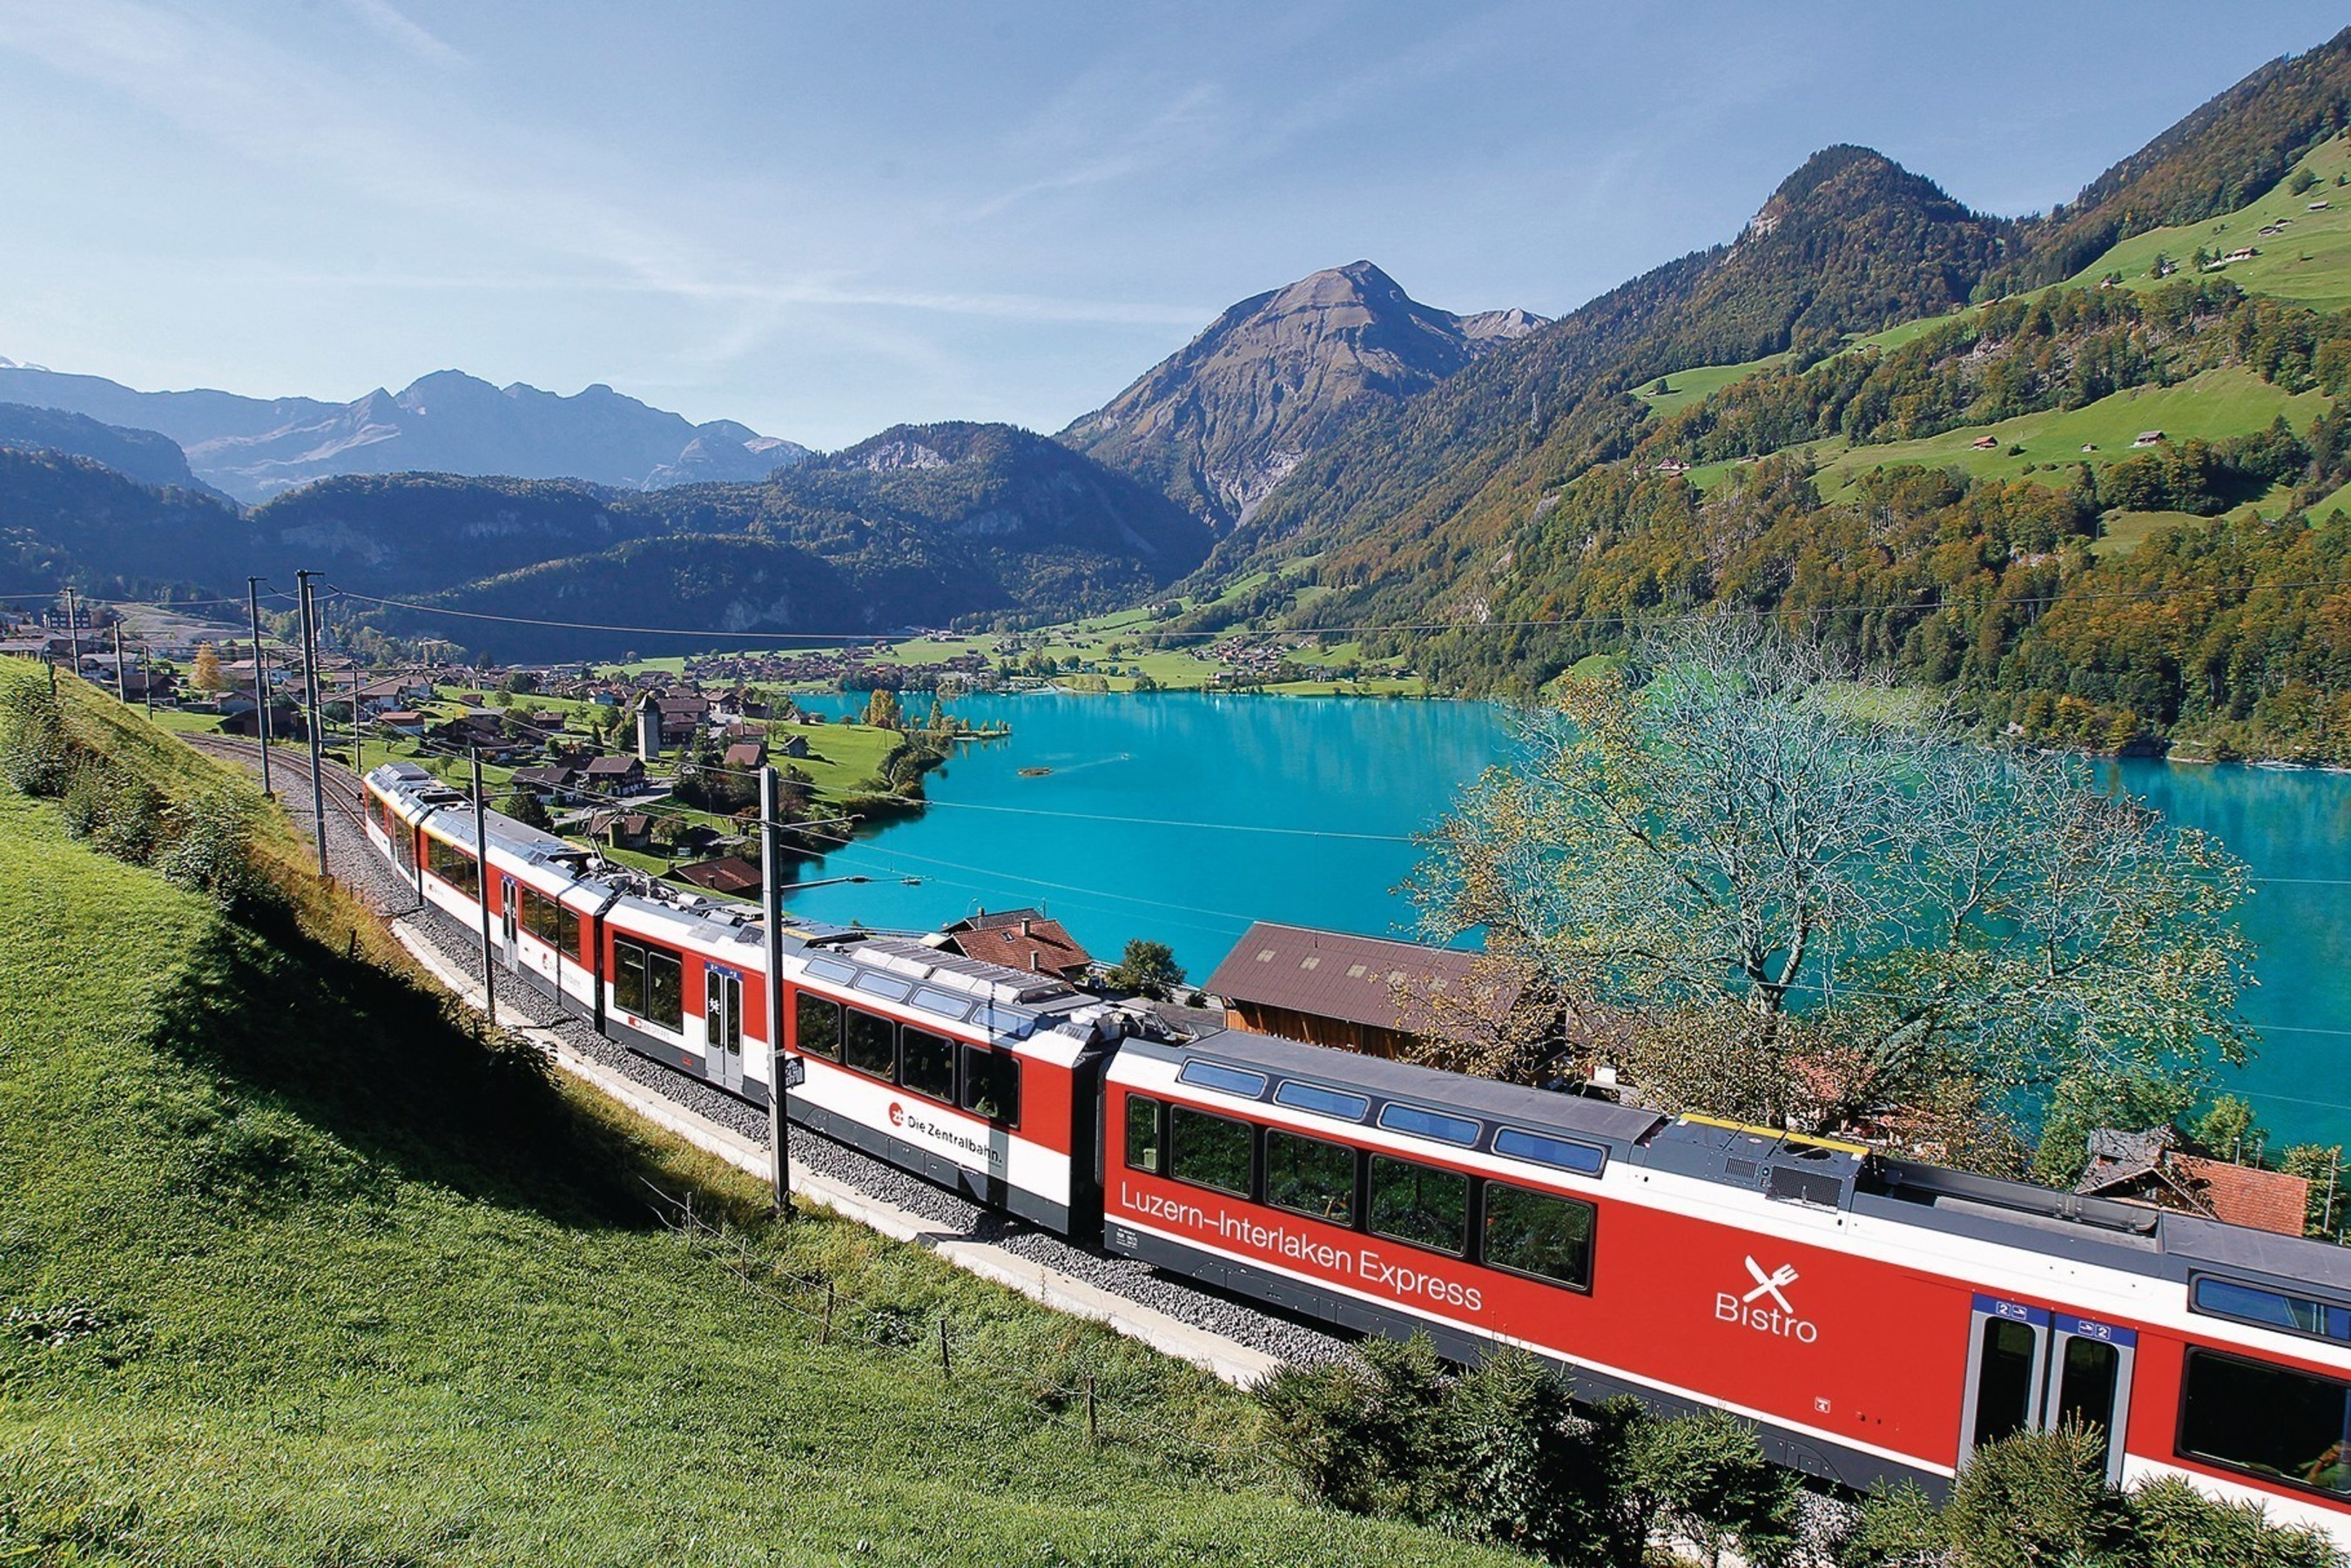 Travelers with the Swiss Travel Pass Receive Extensive Travel on the Swiss Travel System, and Now $100 or More Off the Price When Purchased Through Rail Europe